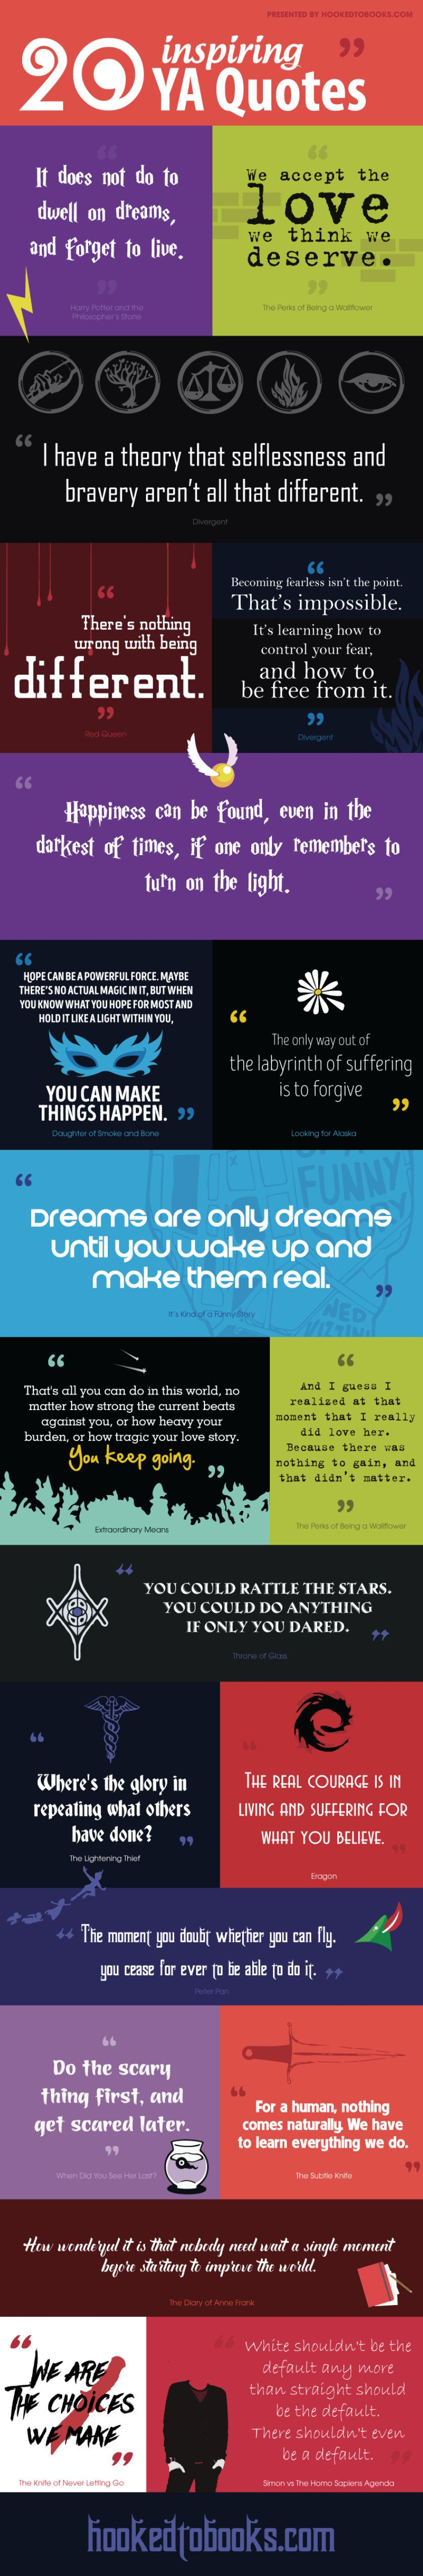 20 Motivational Quotes From Ya Books Infographic-2453